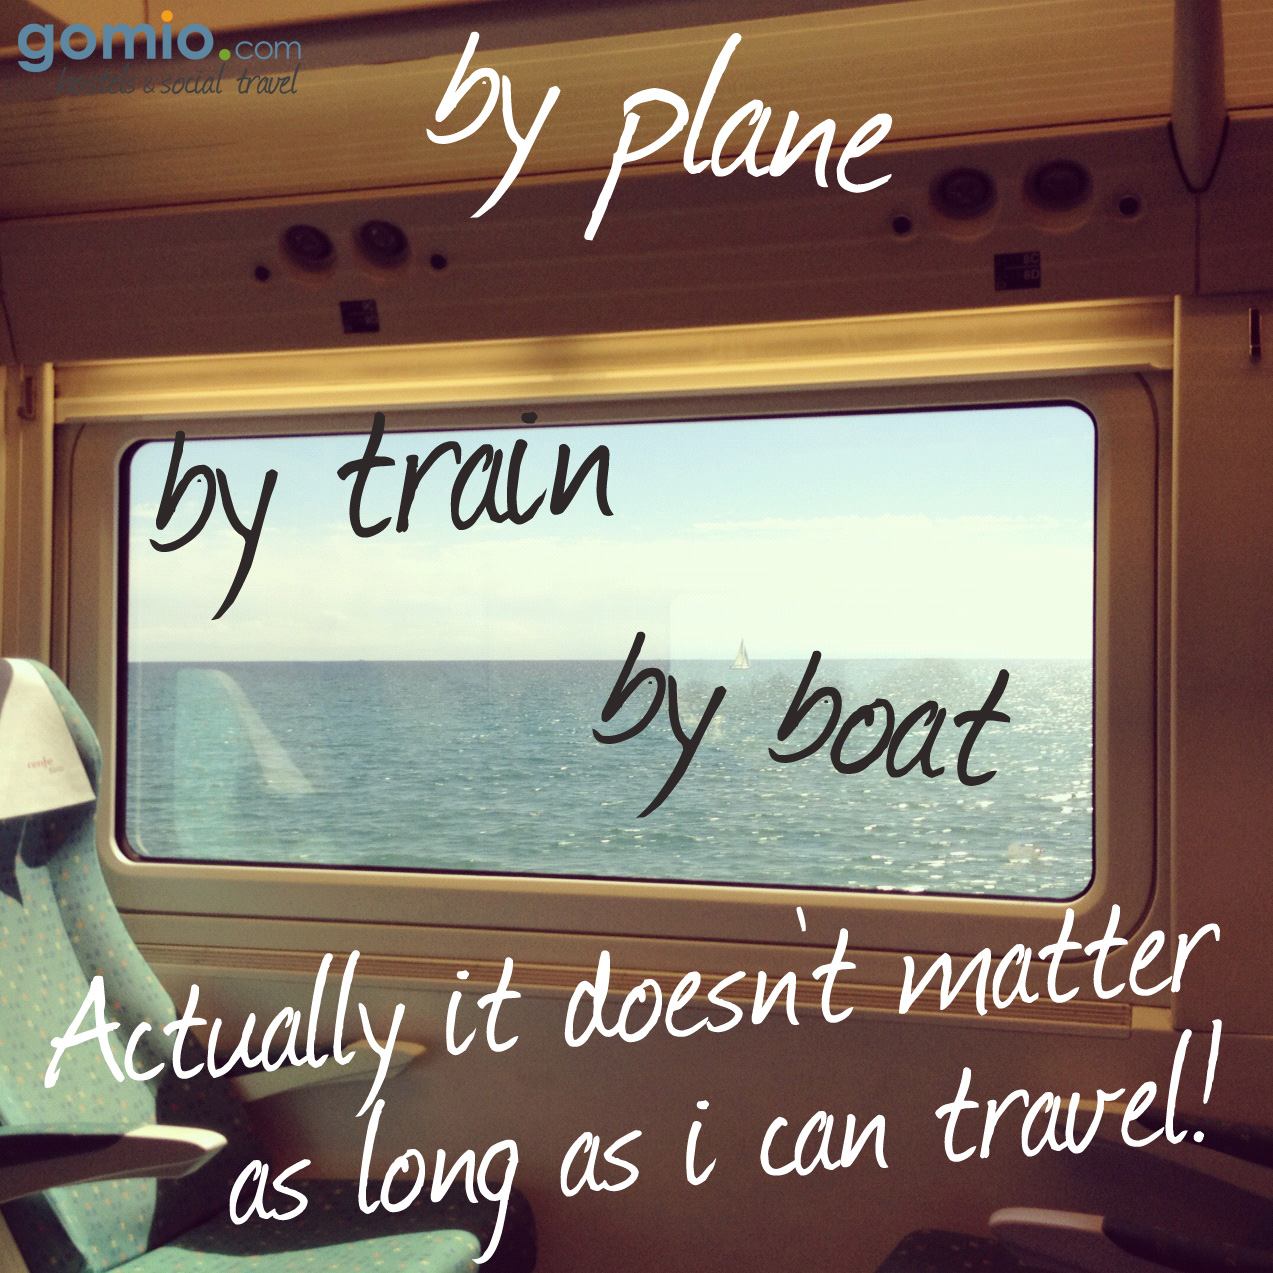 Travel The World Quotes Tumblr: Quotes About Traveling For Work. QuotesGram